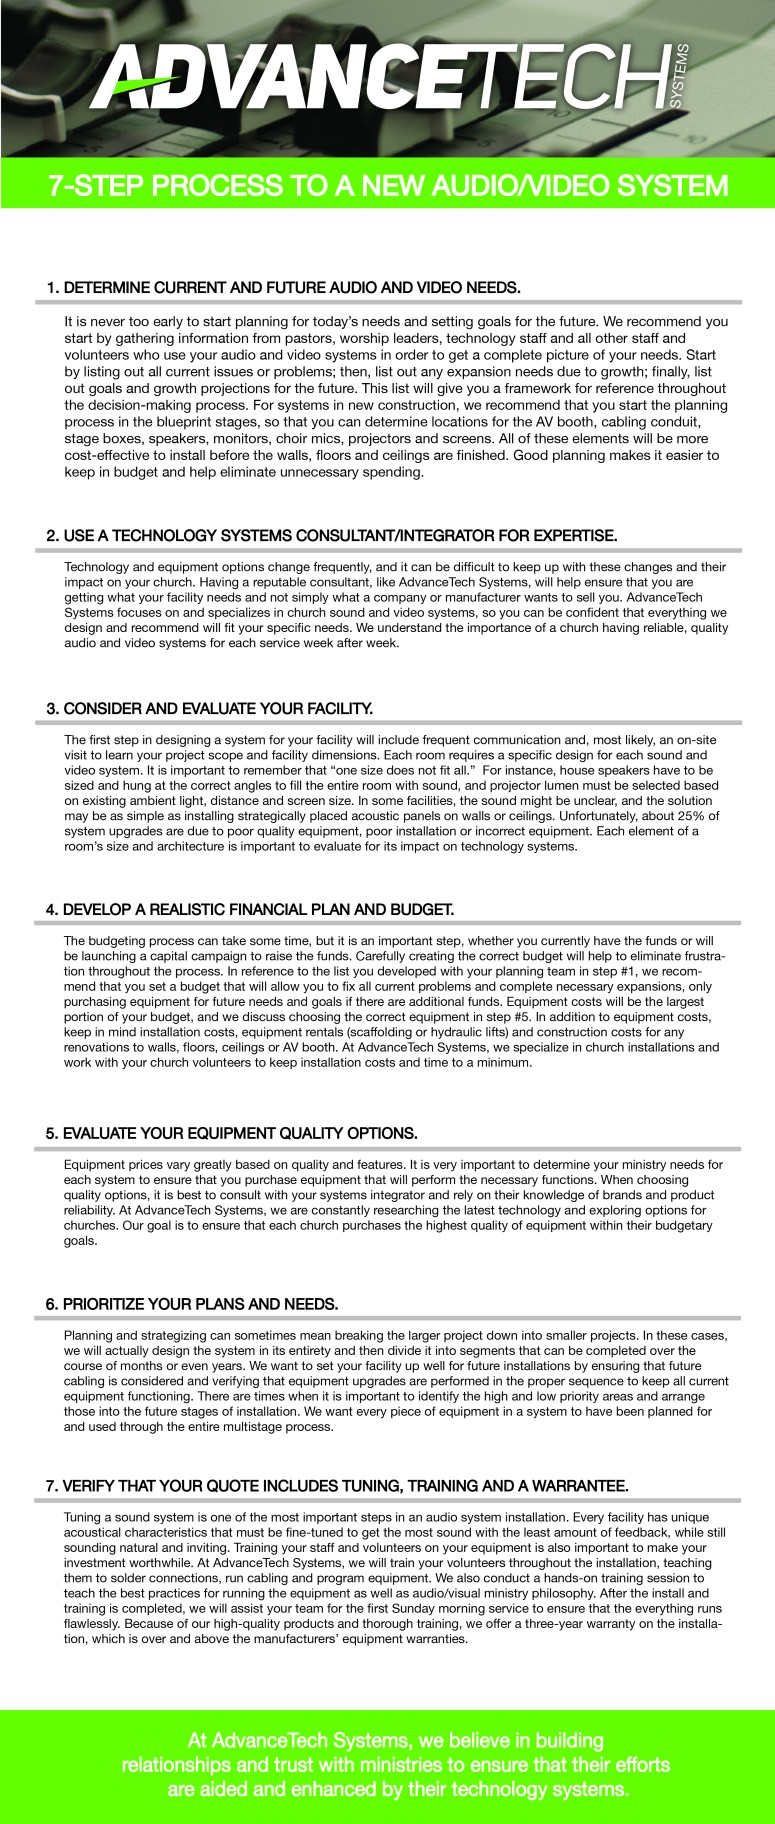 7 Step Process for a New Audio & Video System_Designed 2-01